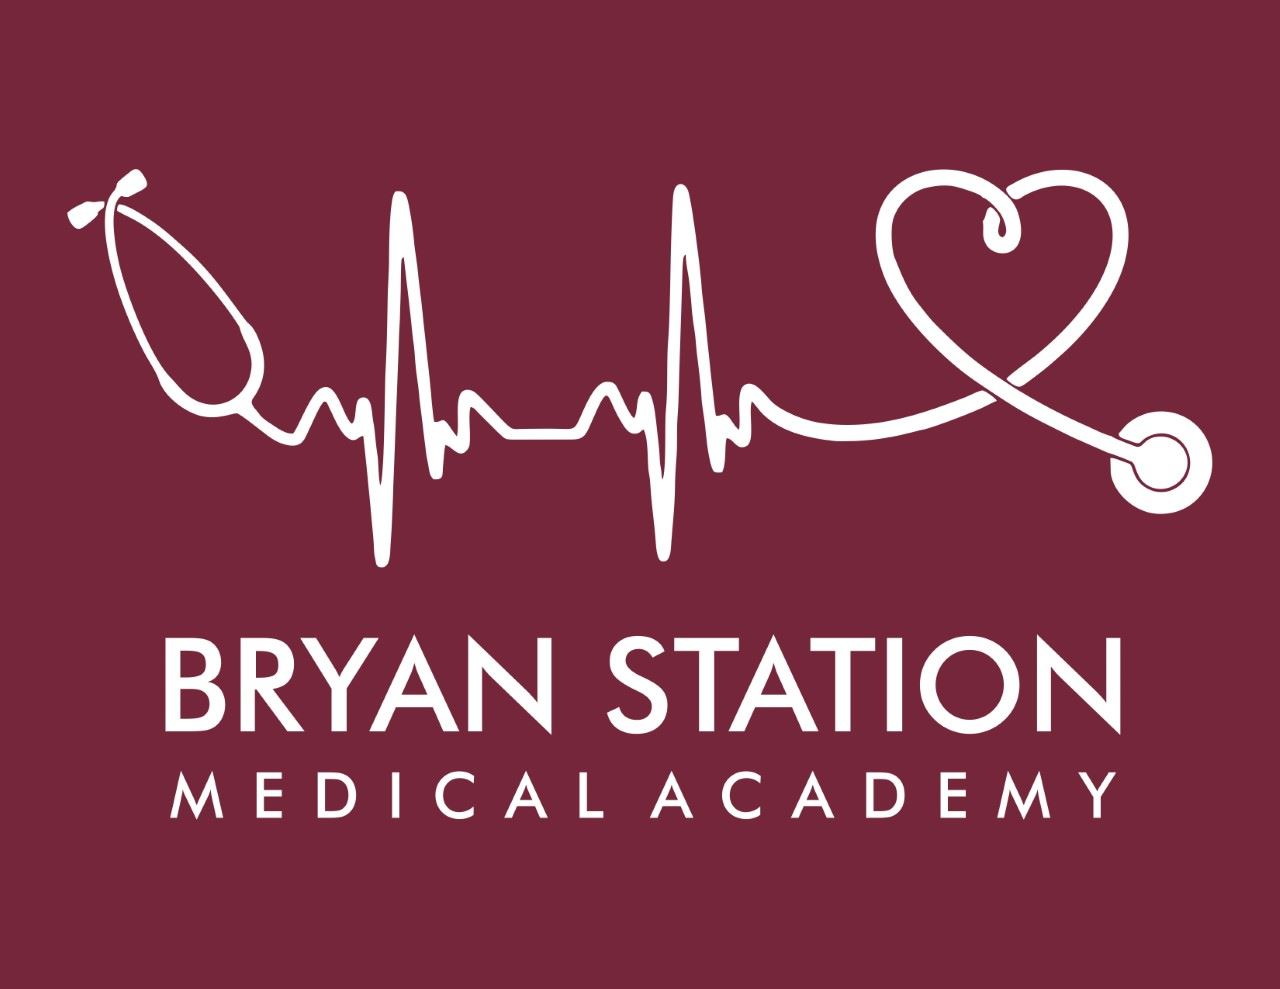 Medical Academy Logo